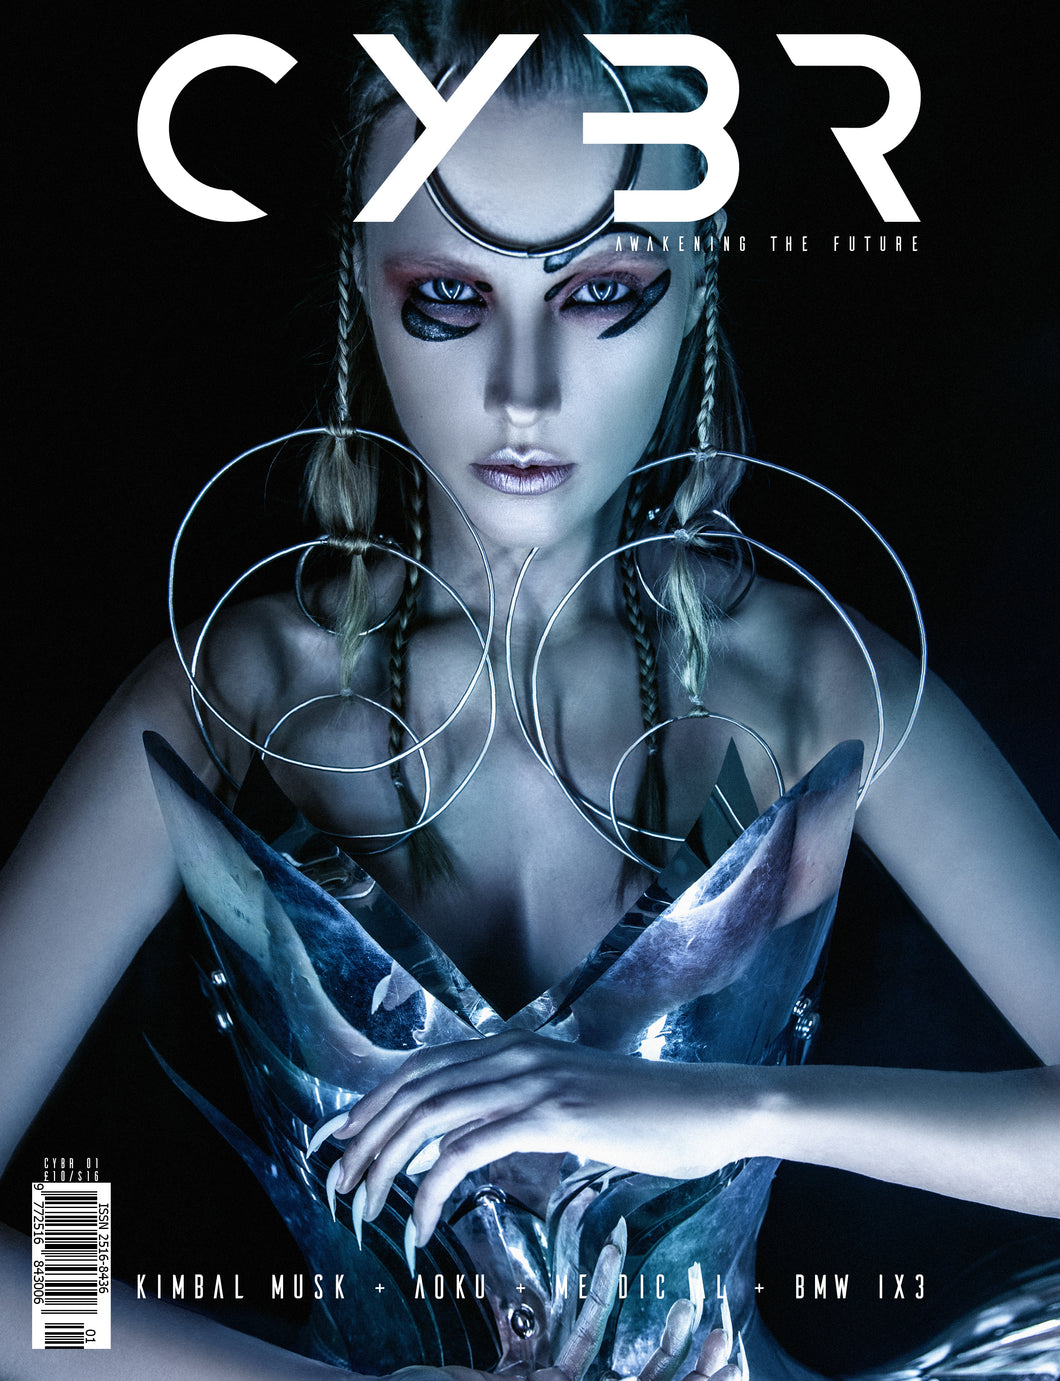 CYBR Magazine Issue 01 DIGITAL